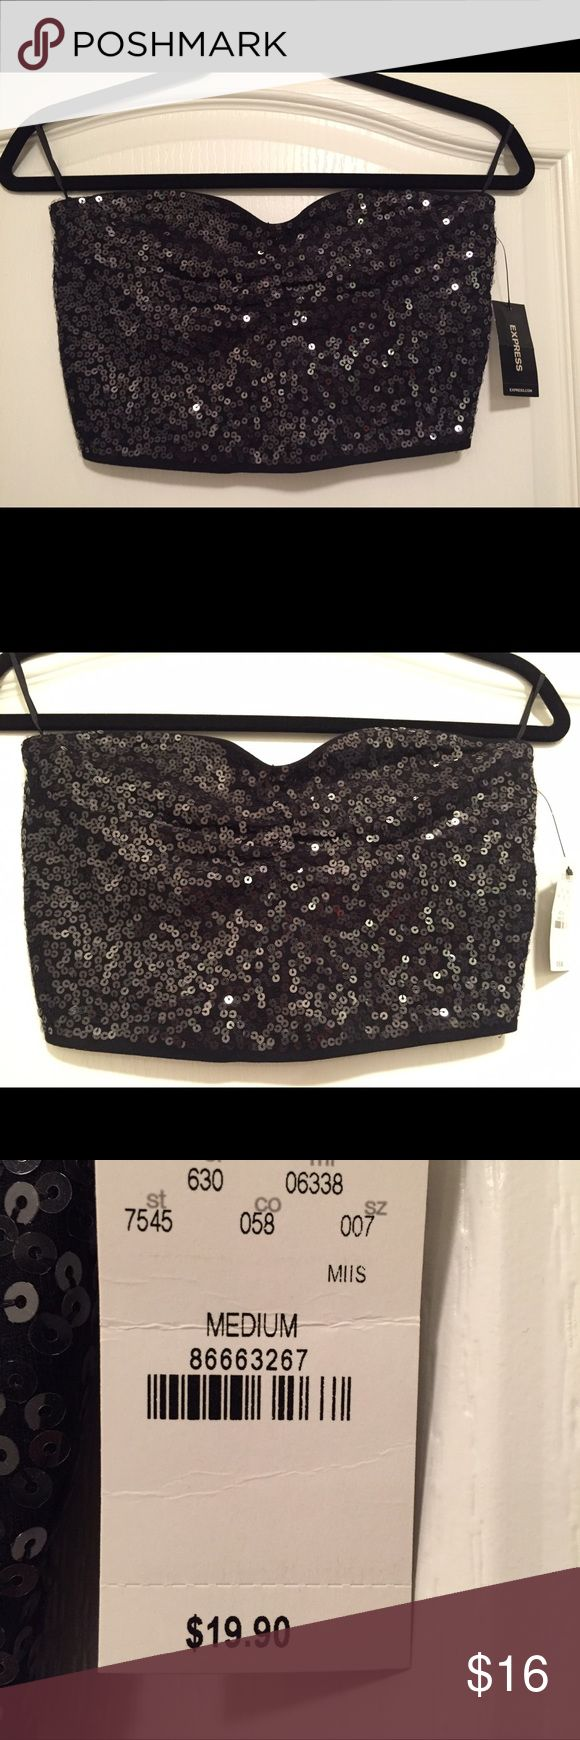 Black sequins bandeau top BRAND NEW WITH TAG. Bandeau top with black sequins. Can be worn by itself or under a tank or dress. Express Tops Crop Tops